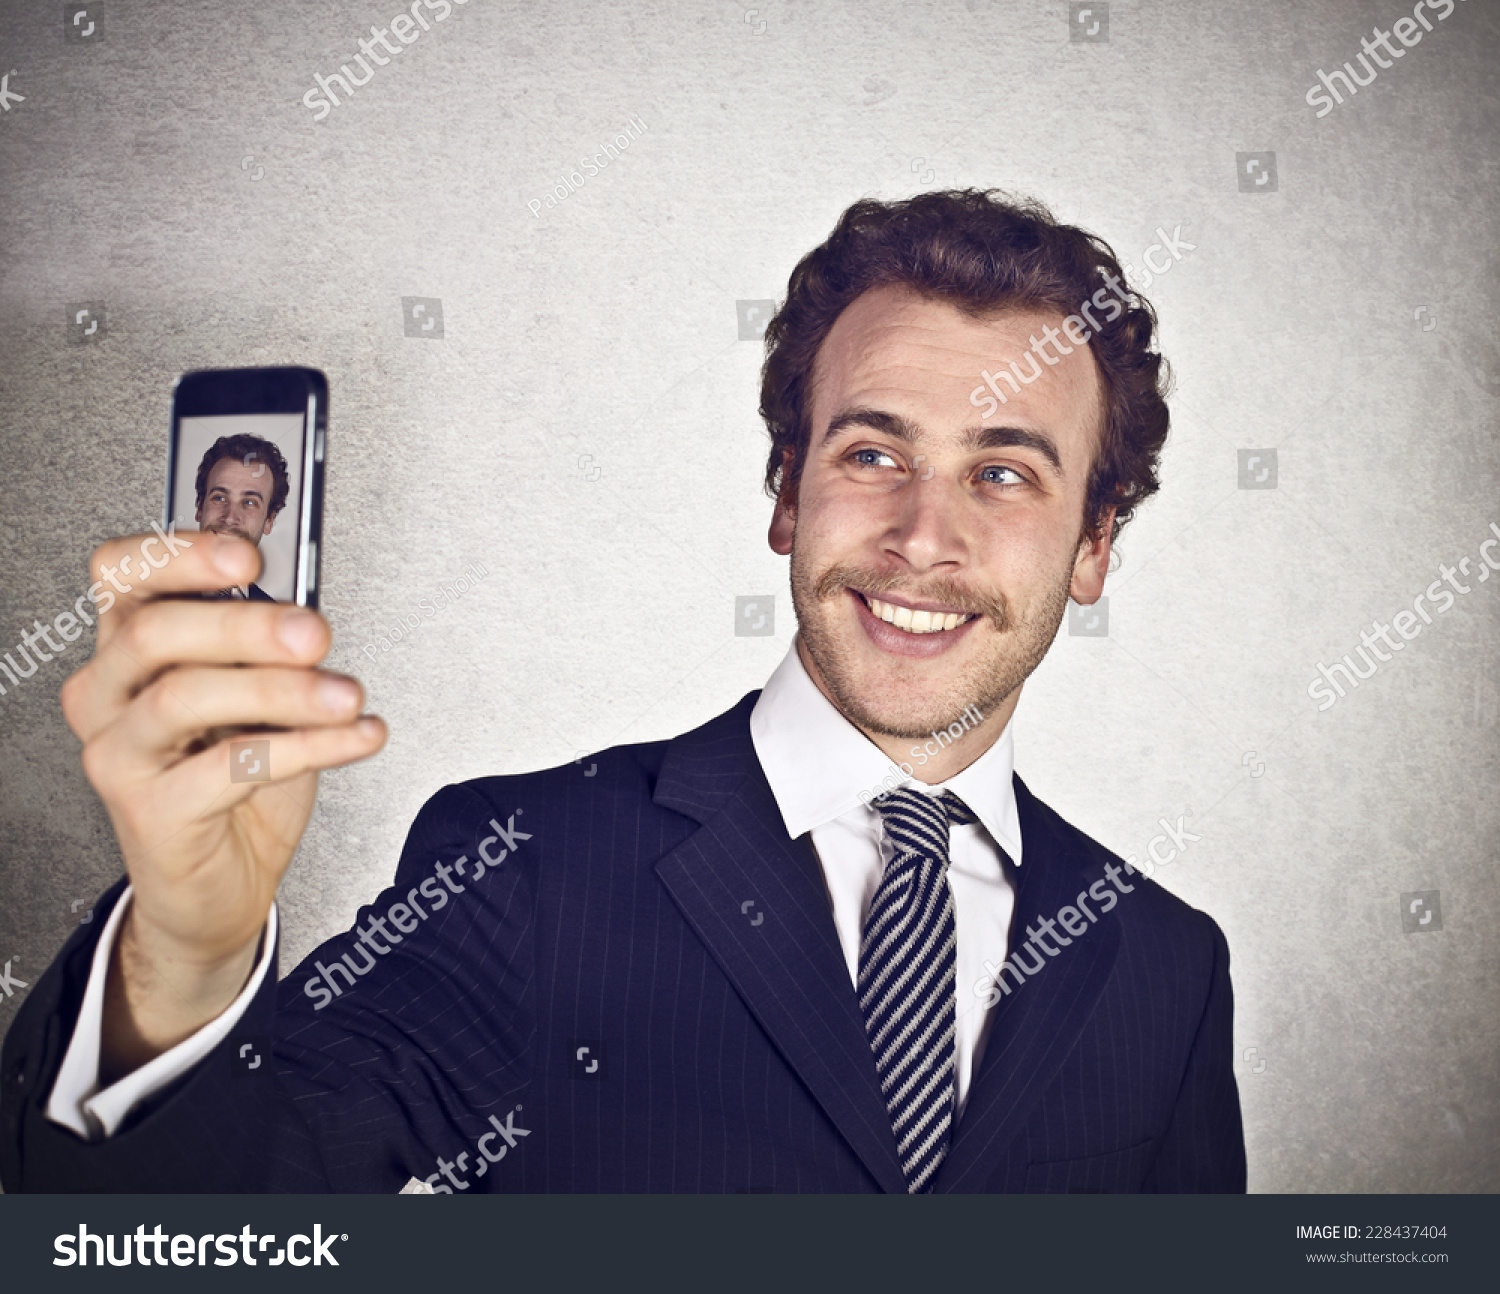 how to hold your phone when taking a selfie